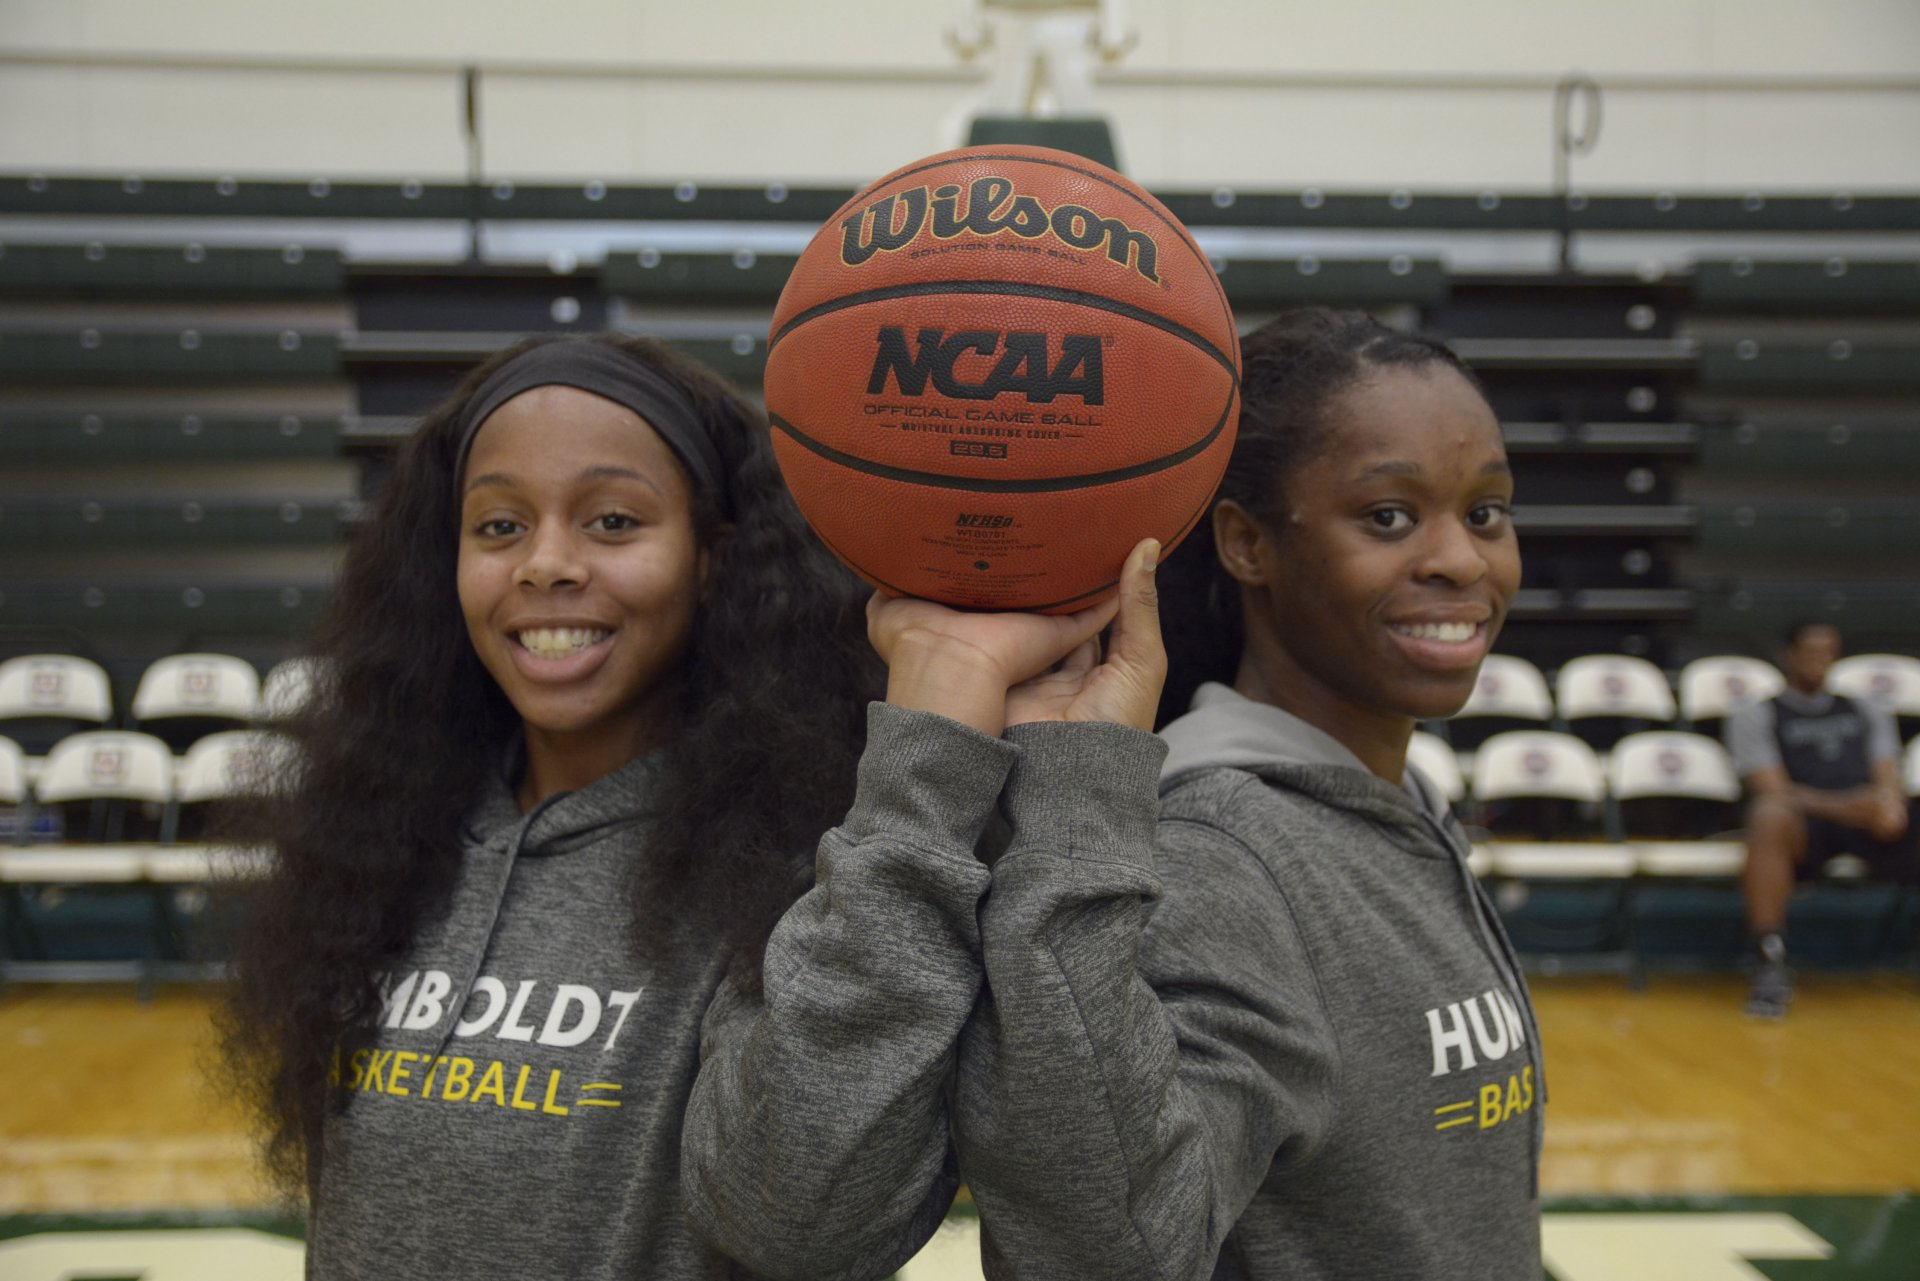 Tyra (left) and Tyla (right) pose for a photo in the Lumberjack Arena on Jan. 30. Photo by Zac Sibek.